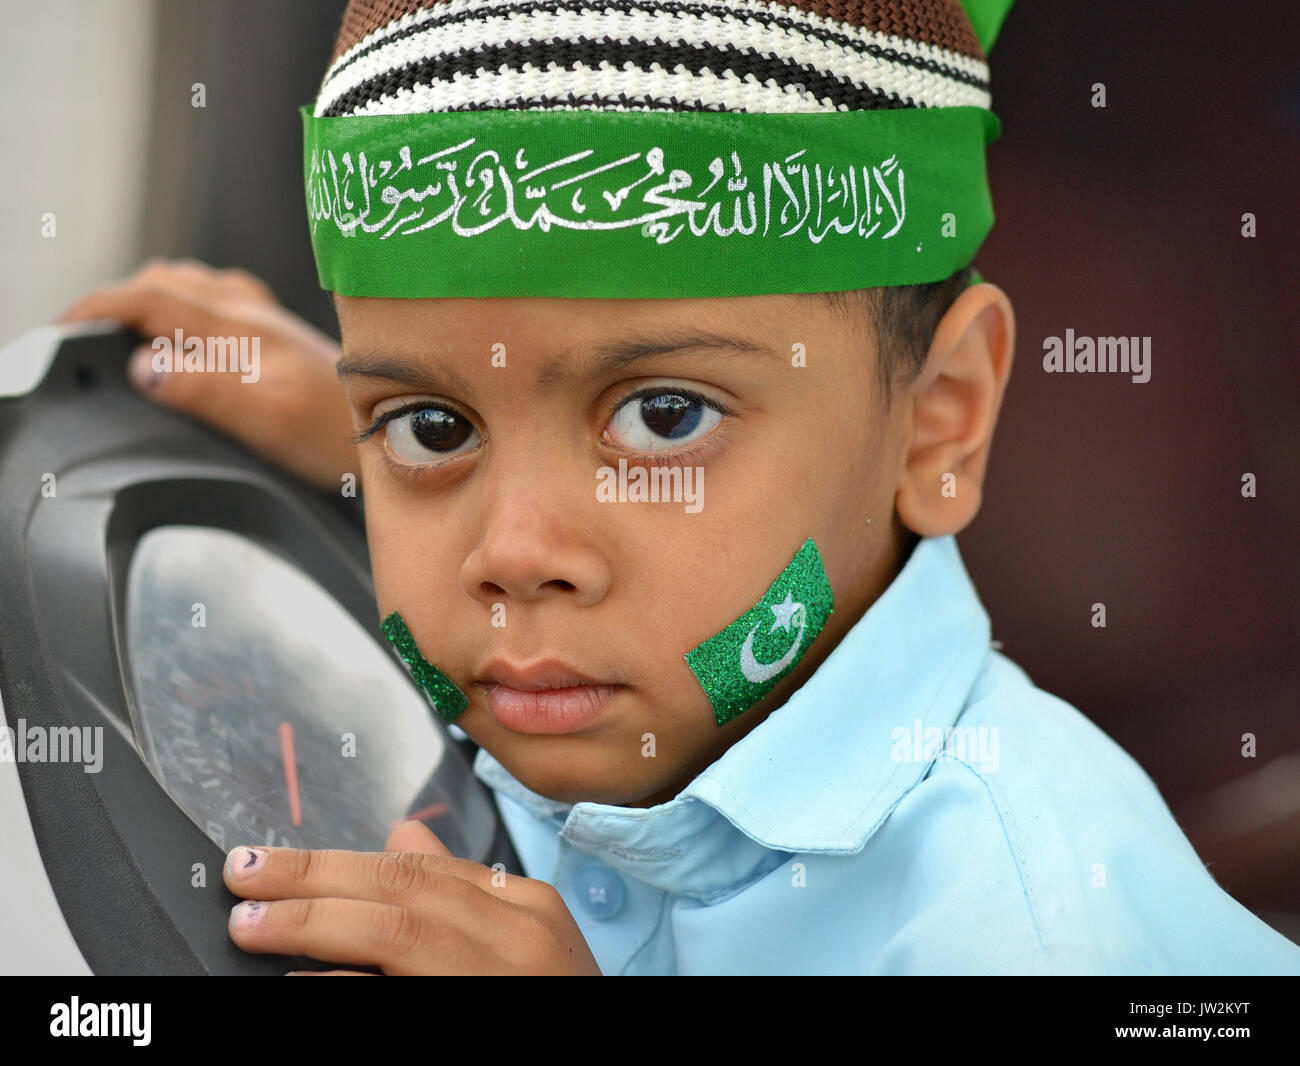 Little Indian Muslim boy, wearing a green bandana during Rabi' al-awwal festivities (Muhammad's birthday) - Stock Image